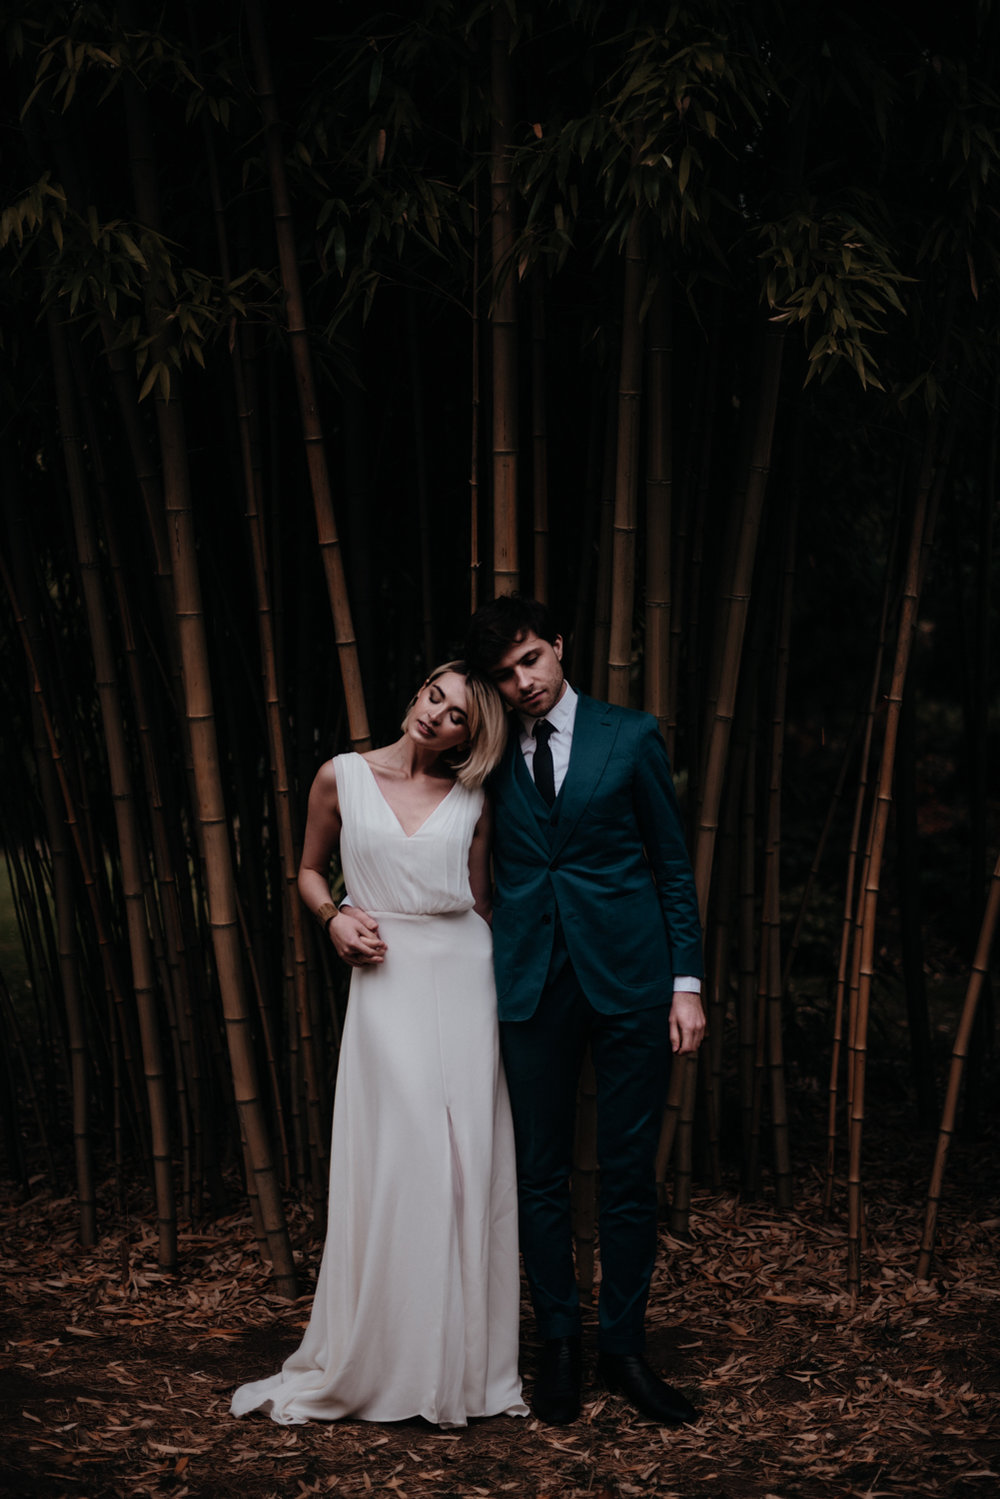 E + F inspiration vegetal tropical minimaliste espace nobuyoshi |  mariage reportage alternatif moody intime vintage naturel boho boheme |  PHOTOGRAPHE mariage PARIS france destination  | FREYIA photography-55.jpg